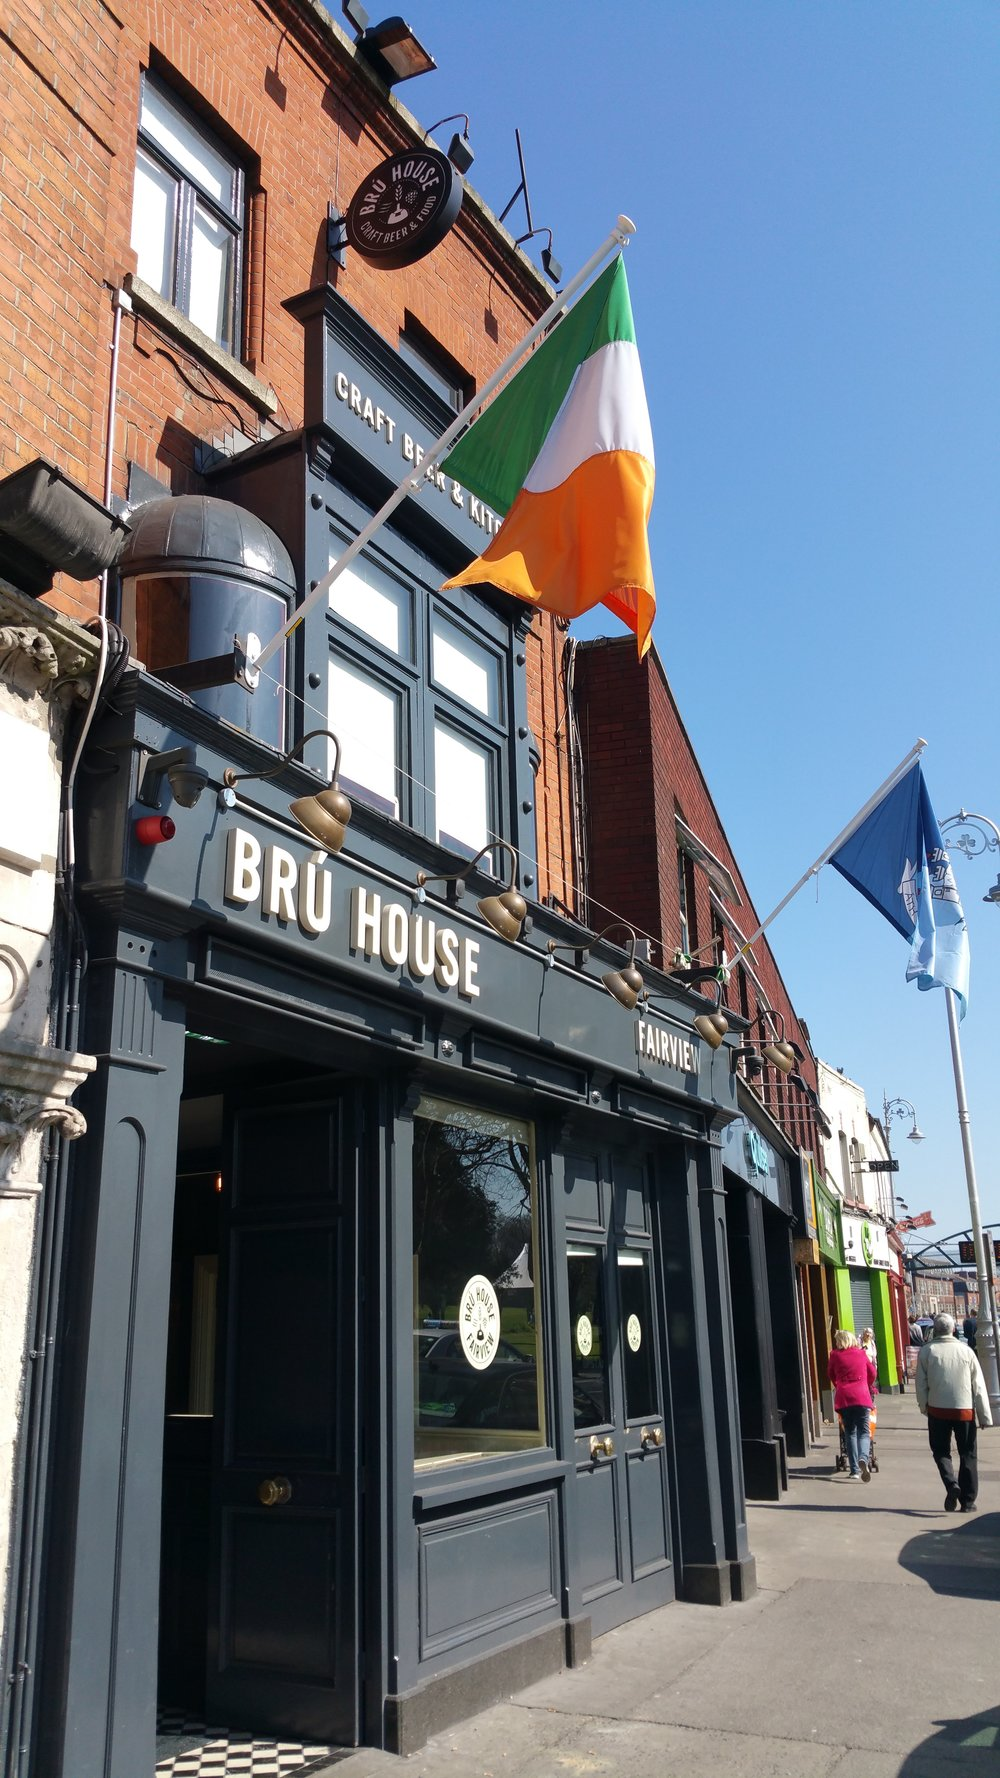 BRÚ House Irish pub at 12 Fairview, Dublin 3.